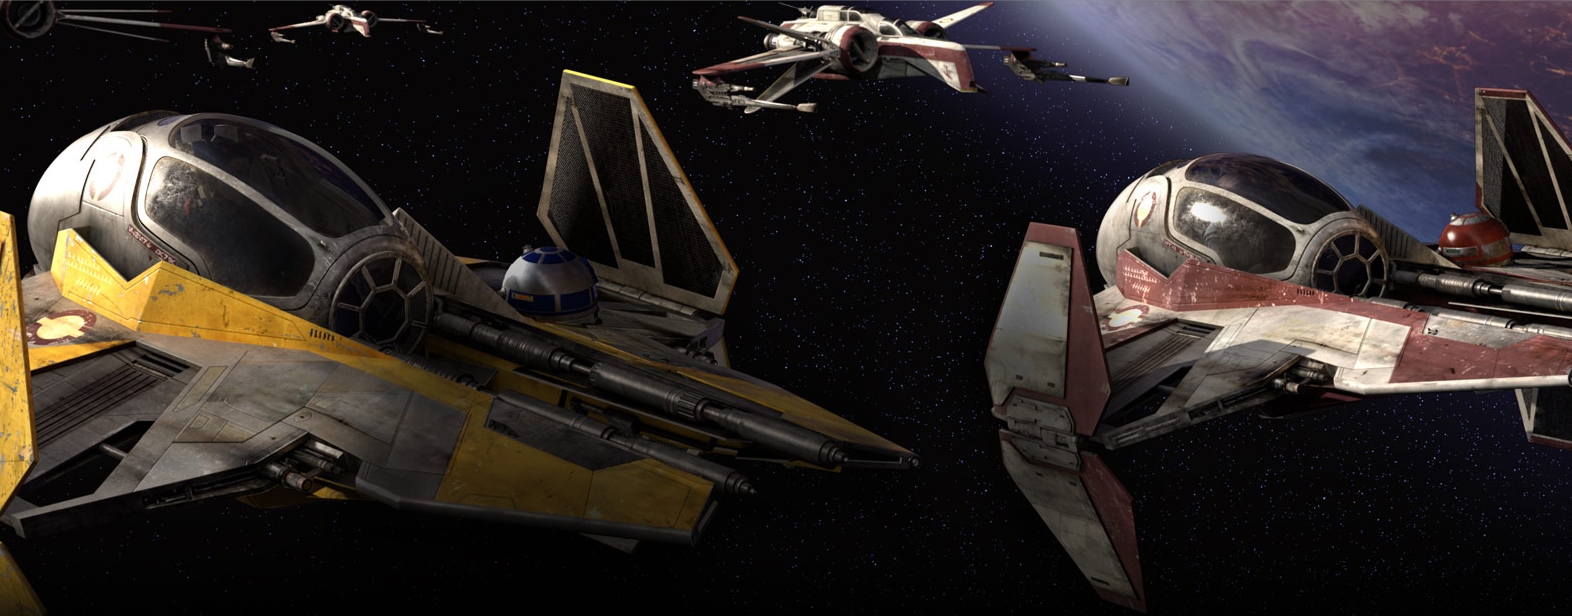 Star Wars Celebration VI: Attack of the Clones and Revenge of the Sith 3D Releases Set for Fall 2013